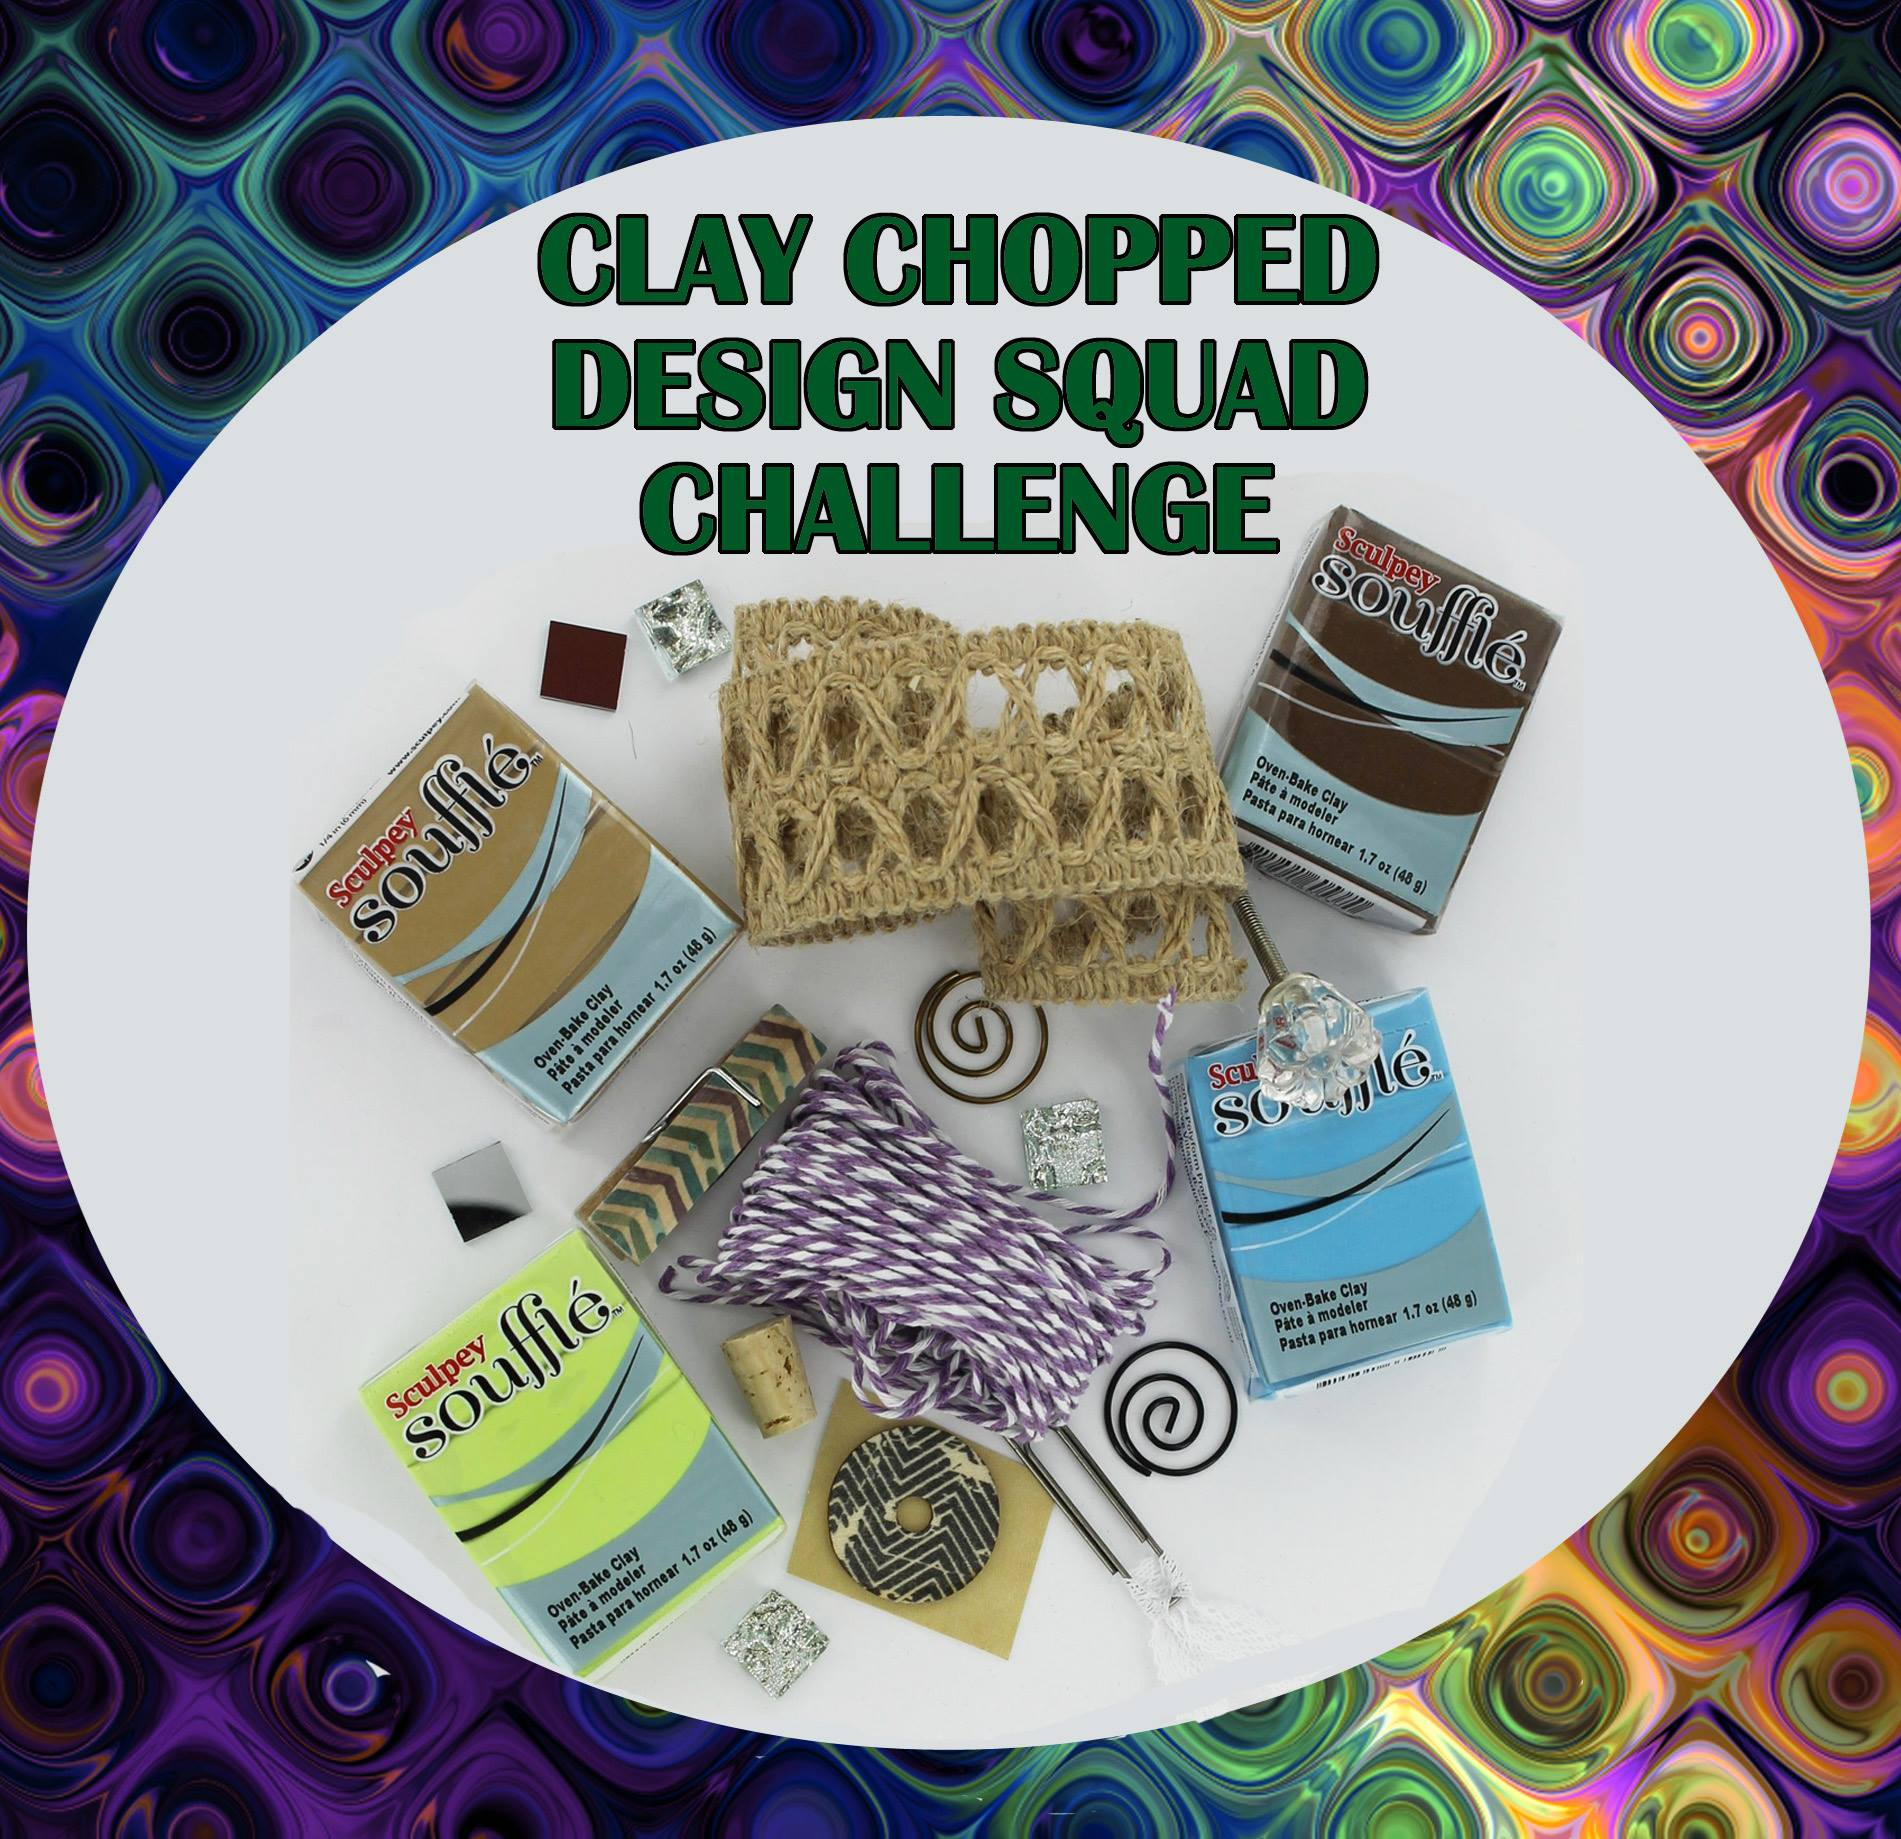 Chopped Design squad challenge